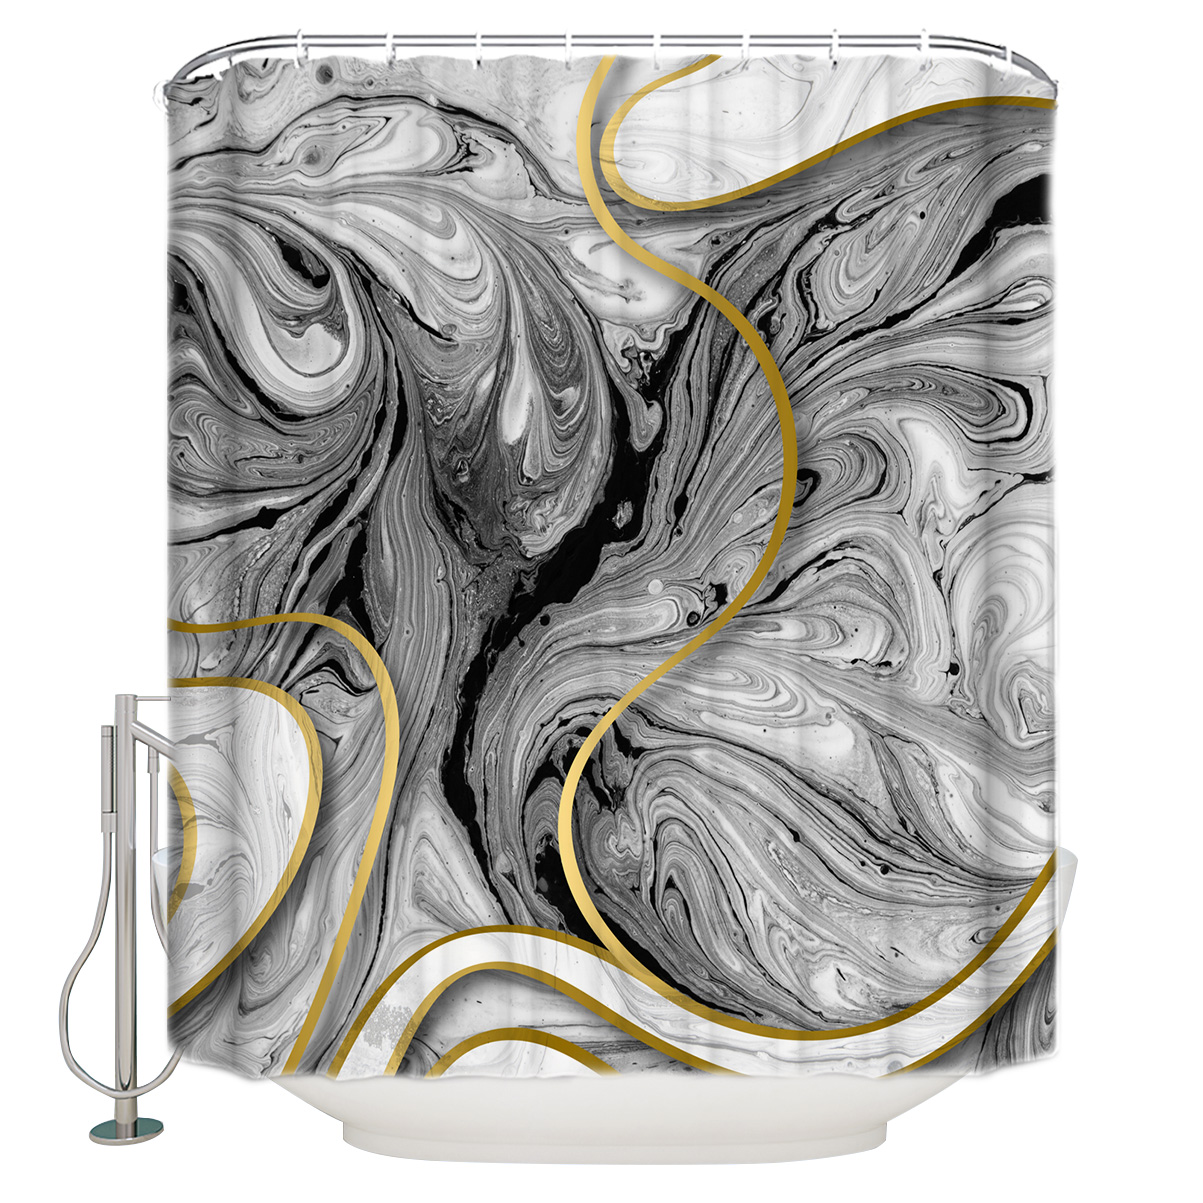 Grey Marble Texture Abstract Gold Polyester Fabric Bathroom Shower Curtain With Hooks Shower Curtains Aliexpress